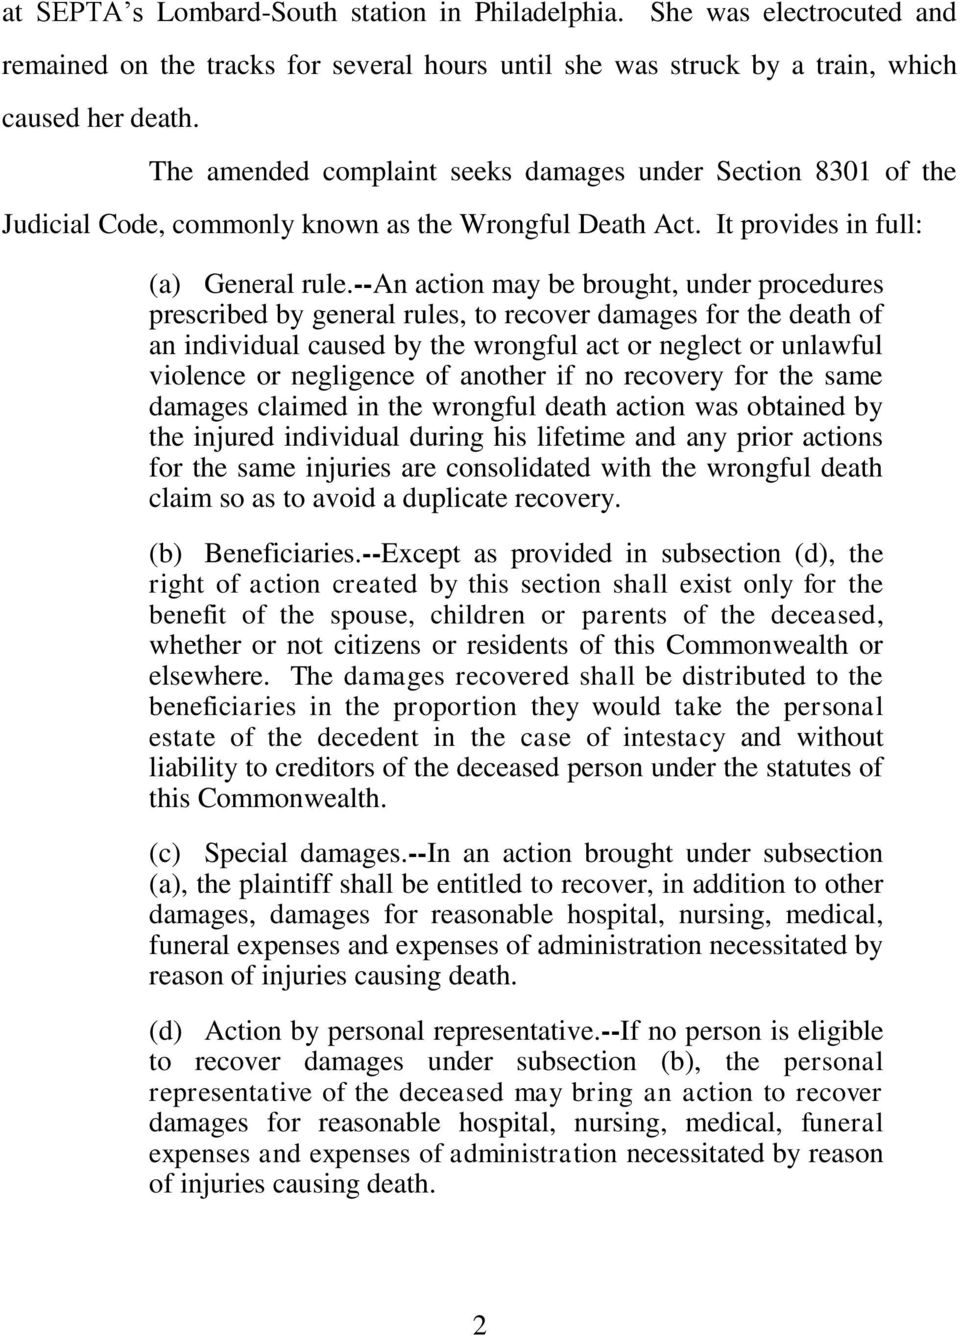 --an action may be brought, under procedures prescribed by general rules, to recover damages for the death of an individual caused by the wrongful act or neglect or unlawful violence or negligence of